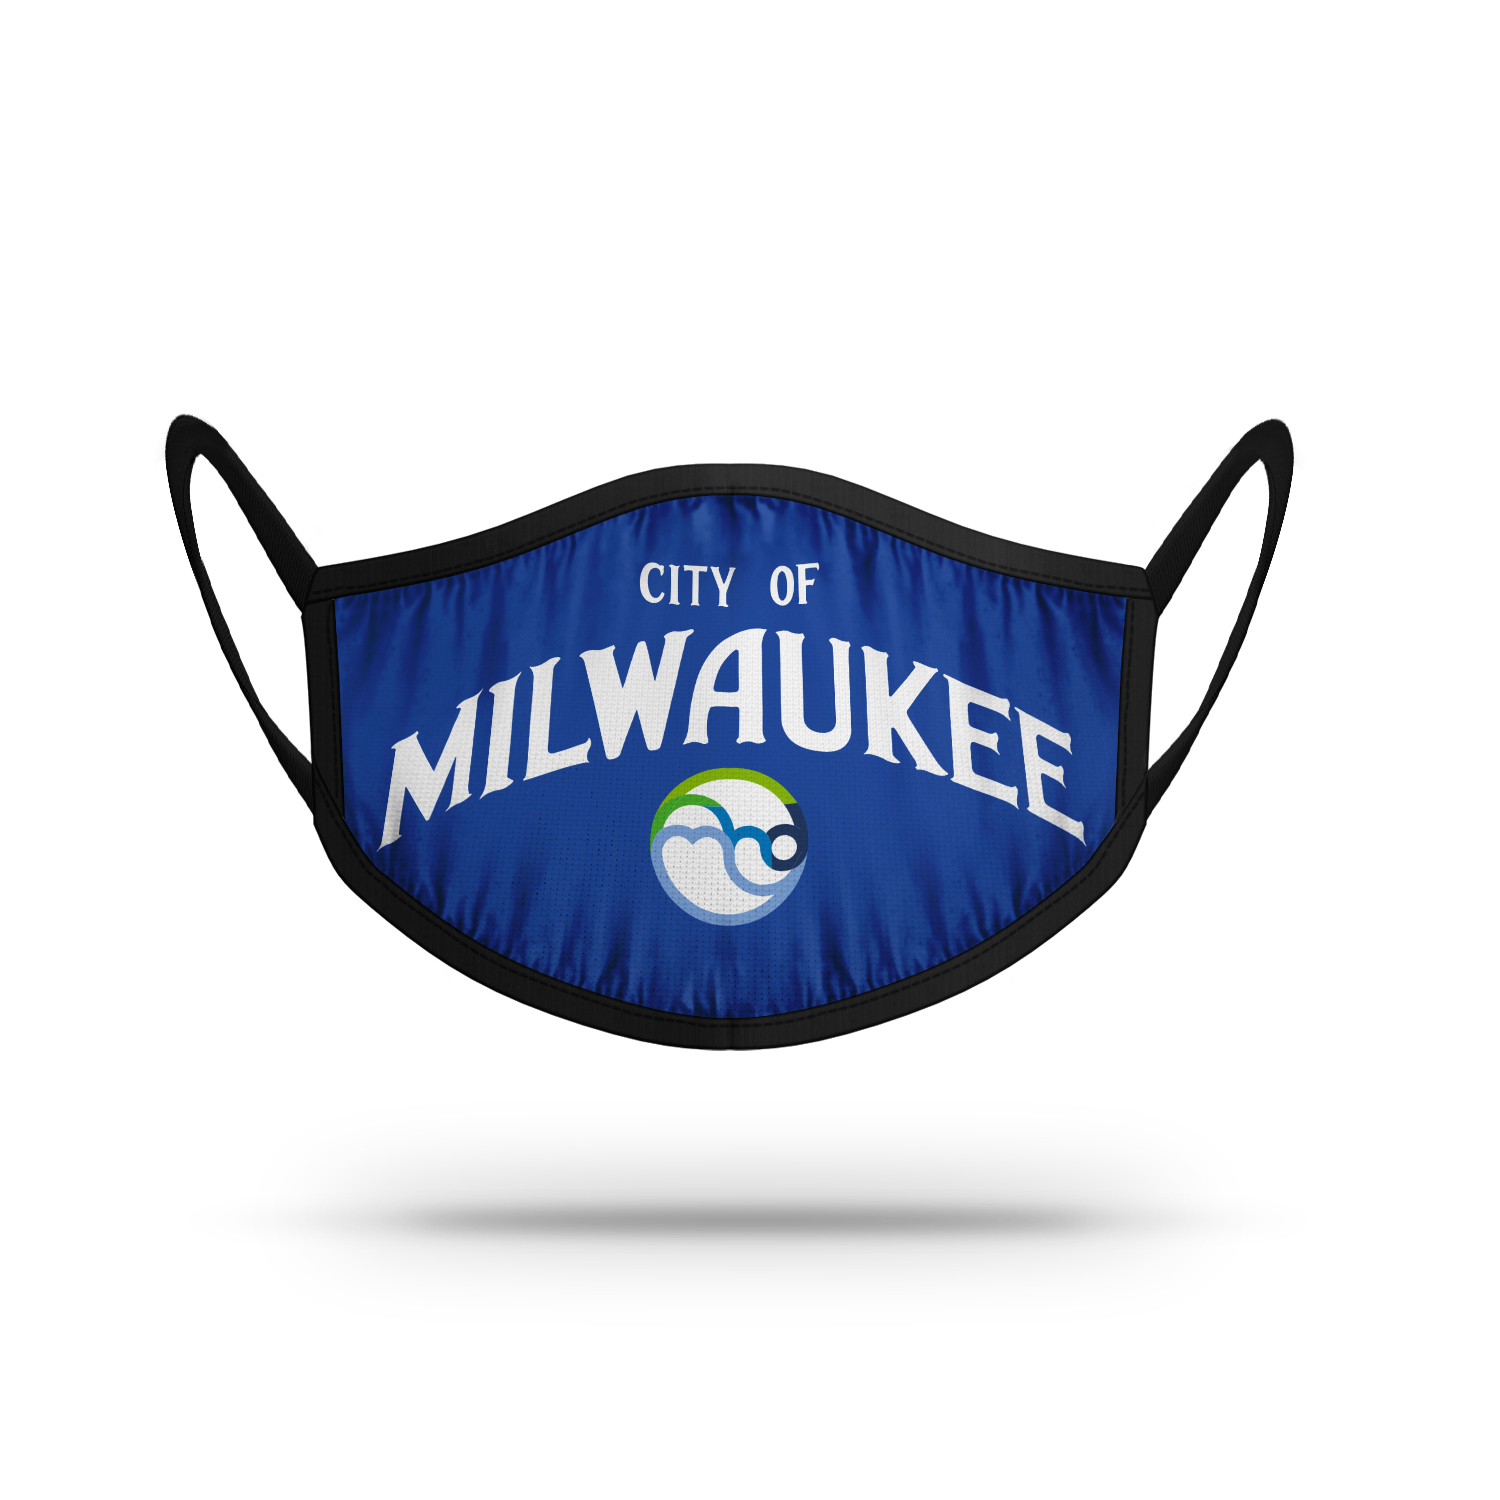 city-of-milwaukee-blue-mask-2-.jpg